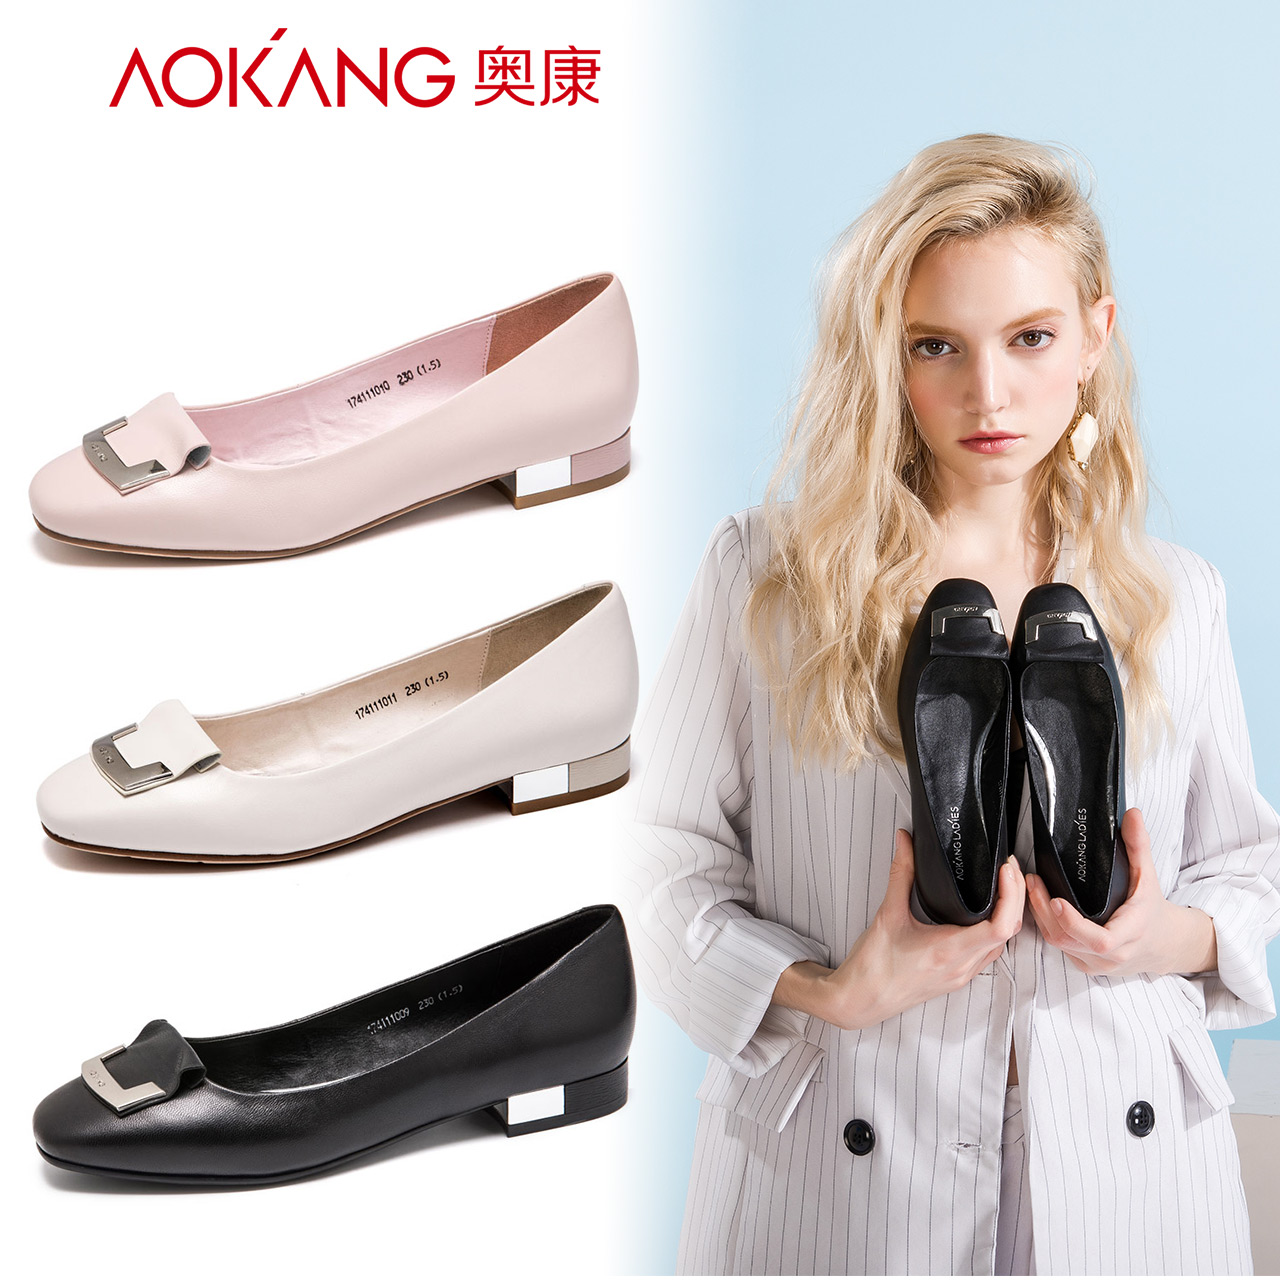 Aokang spring new women's shoes thick with single shoes women's low-heeled elegant commuter shallow mouth fashion wild leather shoes